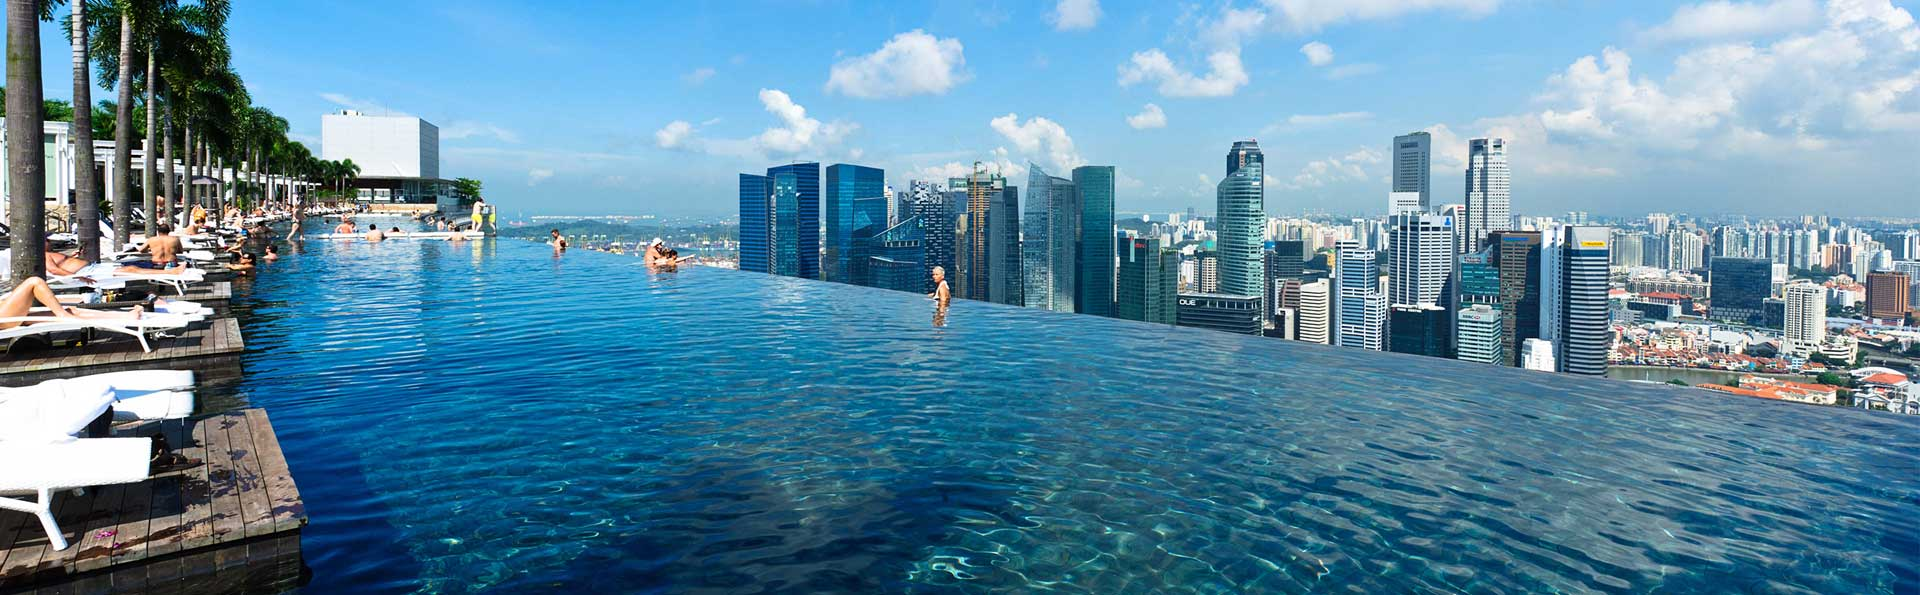 http://jp.marinabaysands.com/content/dam/singapore/marinabaysands/master/main/home/sands-skypark/infinity-pool-banner-day.jpg